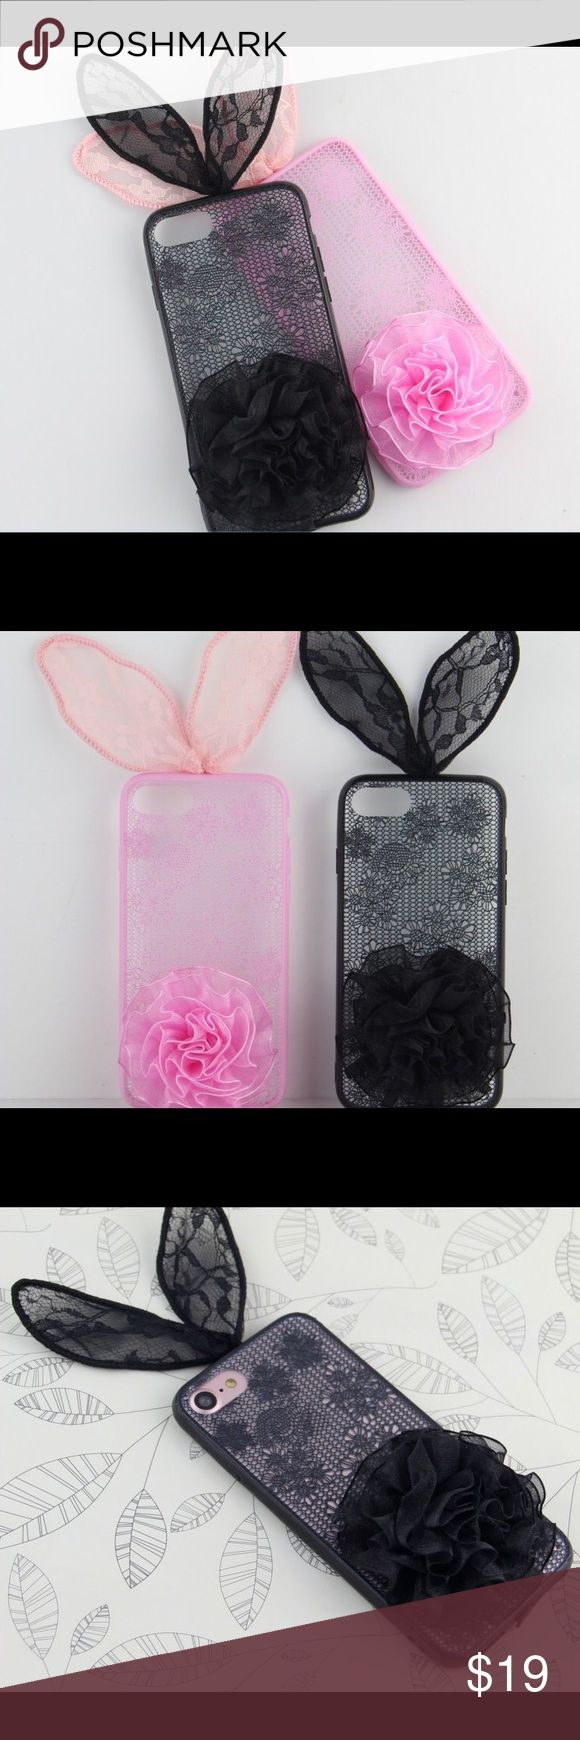 Bunny IPhone 6s, 6s Plus, 7, 7 plus SUPER CUTE iPhone bunny cases :) I have some for 6s,6s Plus, 7 , and 7 Plus . I absolutely love these you guys and these make a cute Christmas gifts or holiday stuffers :) Case is black and pink . iPhone, Samsung , phone, cases, Cute, Chic :) TEASE Accessories Phone Cases